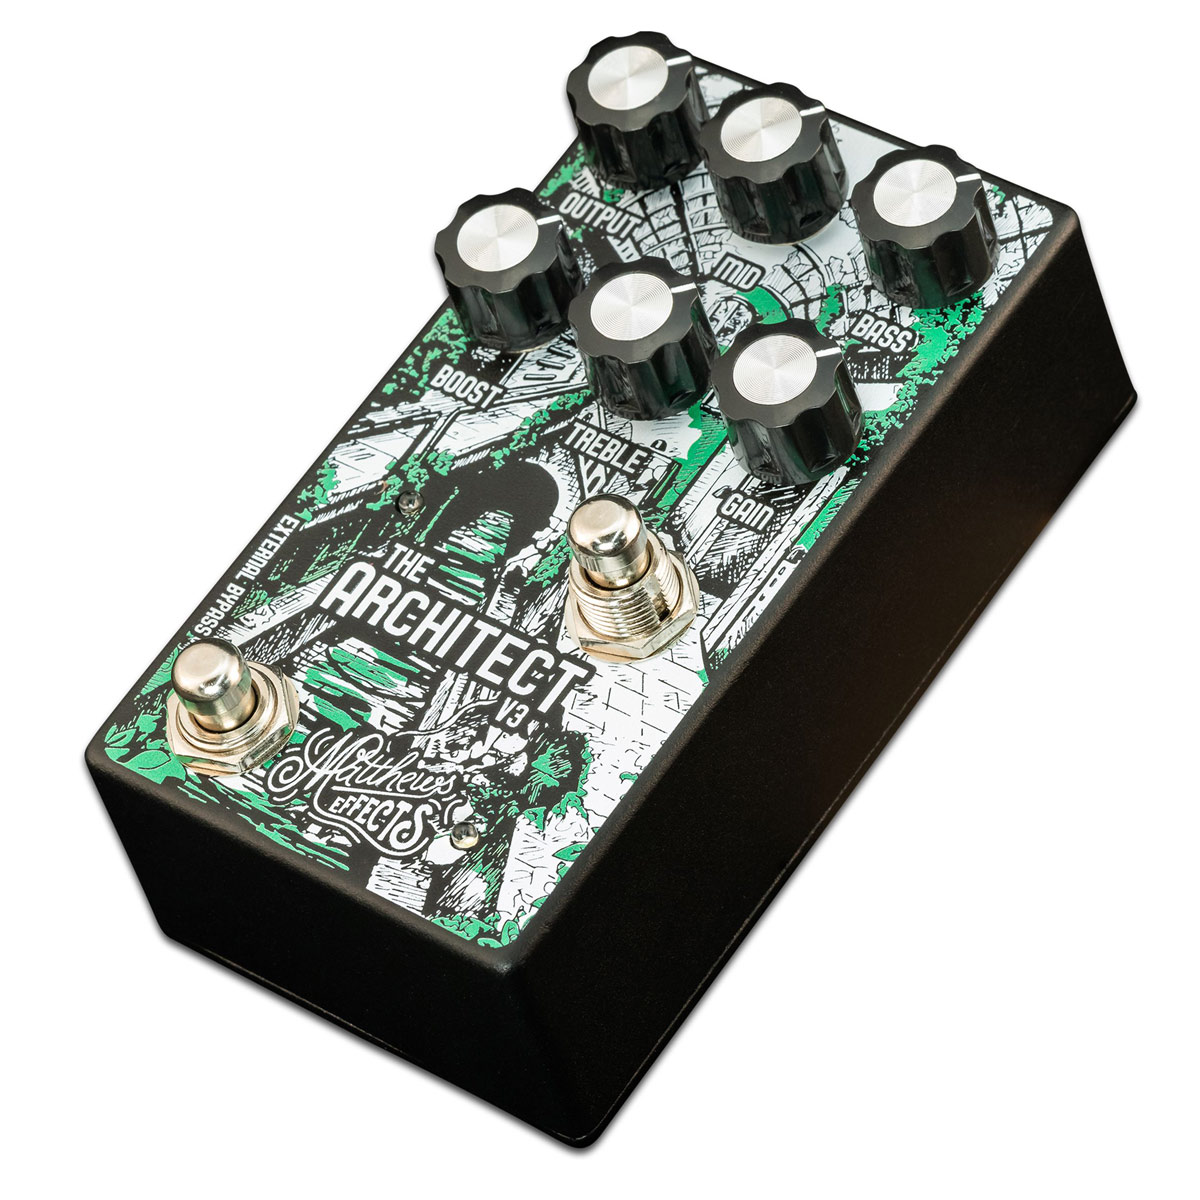 Brand New Matthews Effects Pedal The Architect V2 Foundational Overdrive